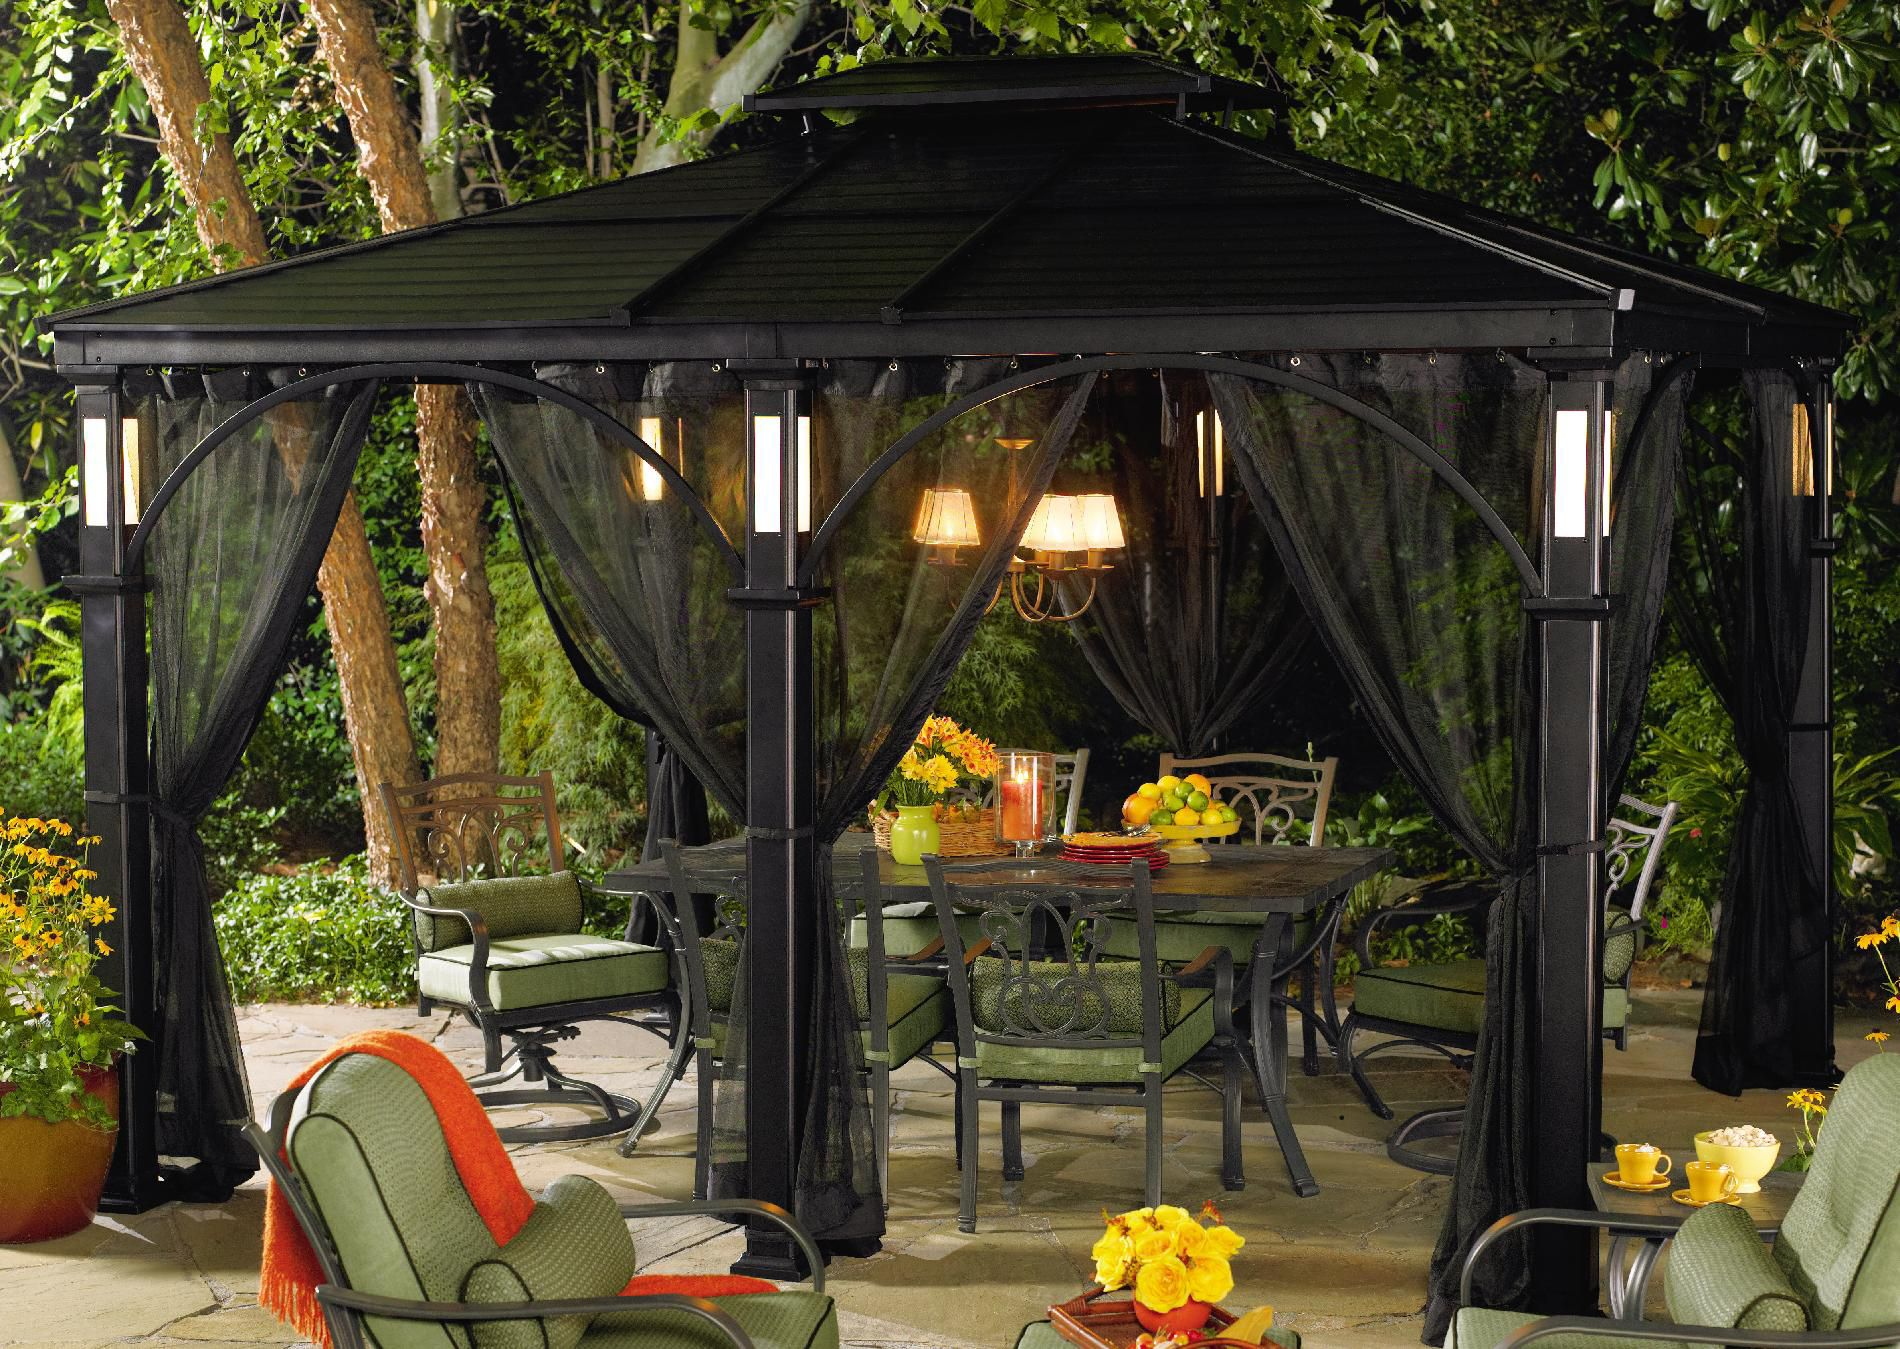 Grand Resort 10 Ft. x 12 Ft. LED & Aluminum Roof Top Gazebo*